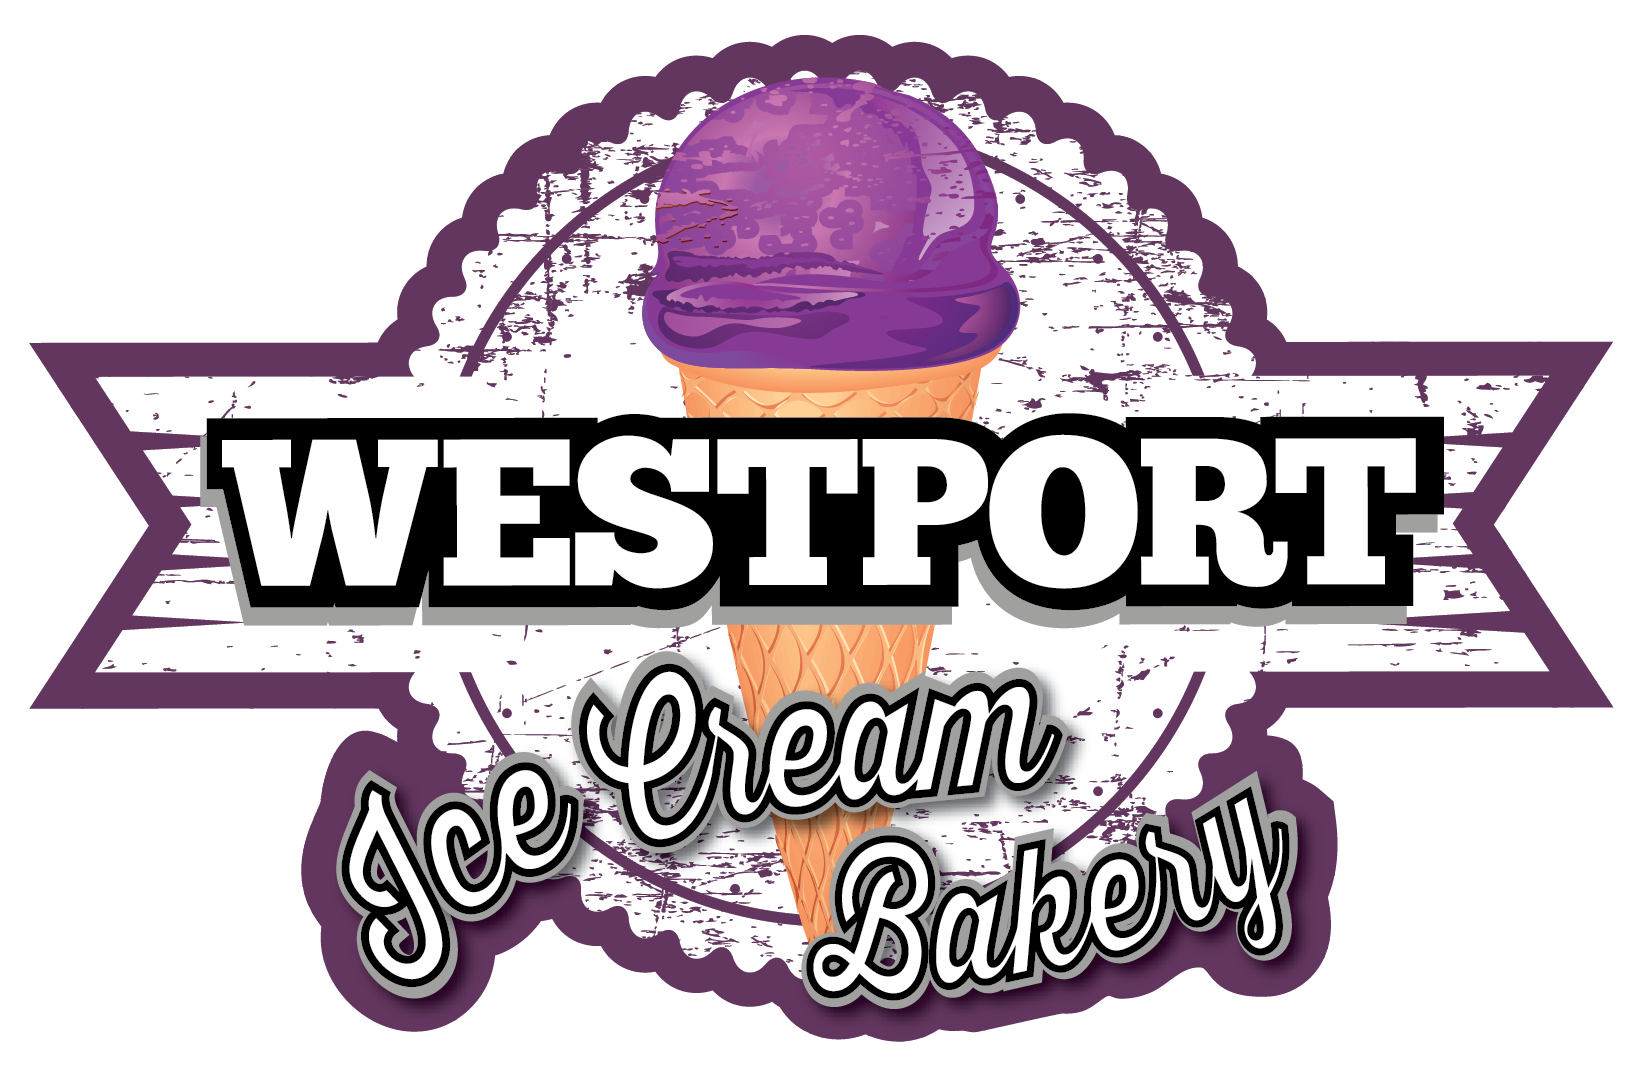 Adobe Illustrator Logo Design - Westport Ice Cream Bakery